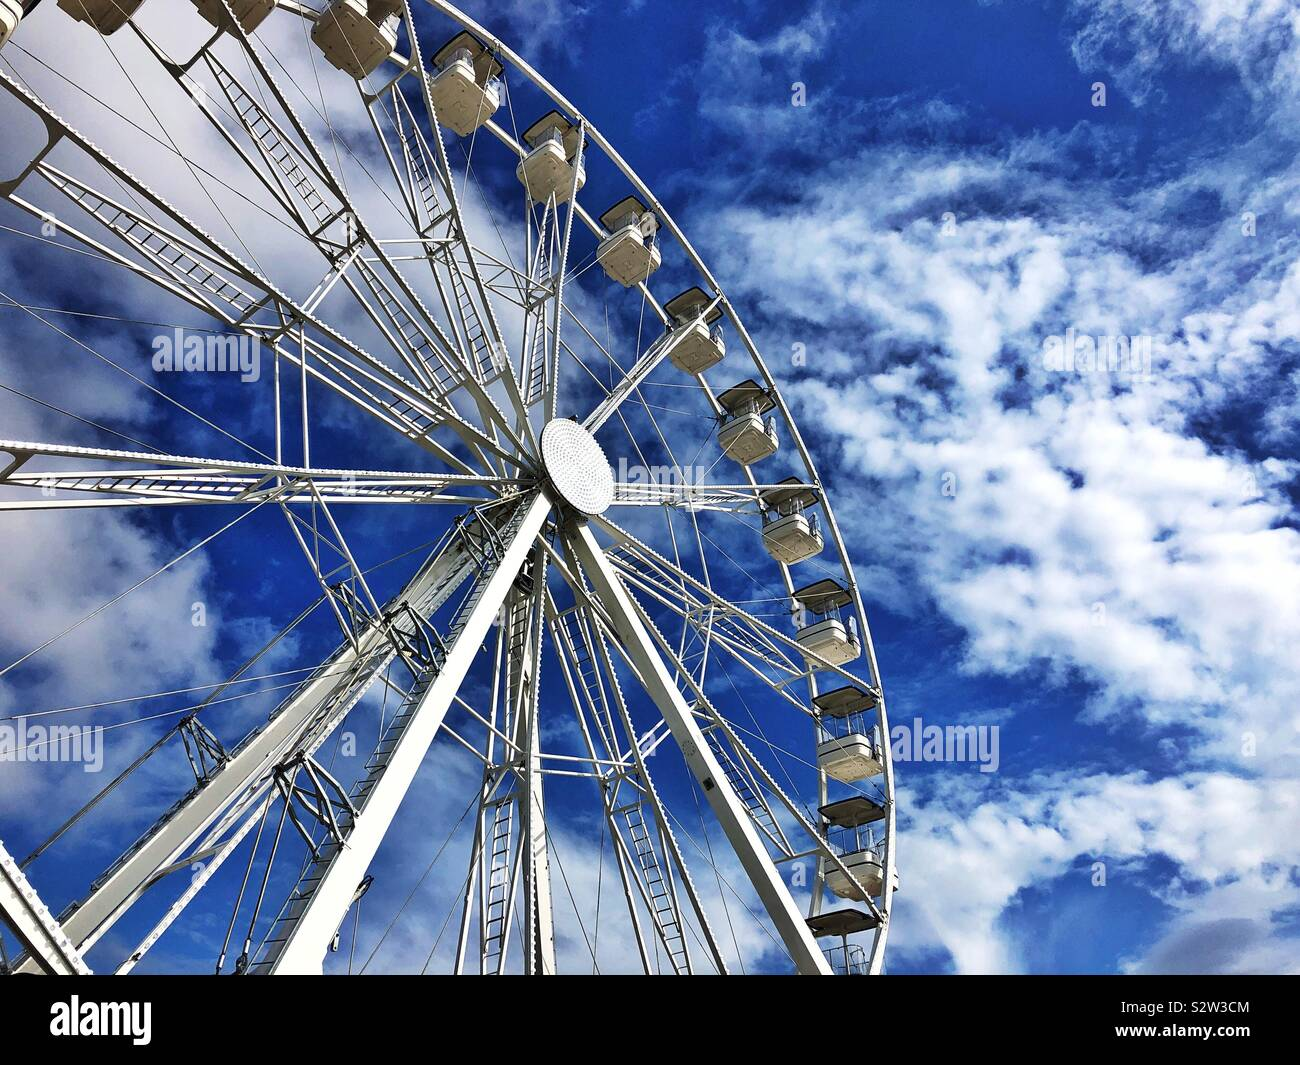 Big Wheel fairground ride at Barry Island Pleasure Park, South Wales, August 2019. Stock Photo